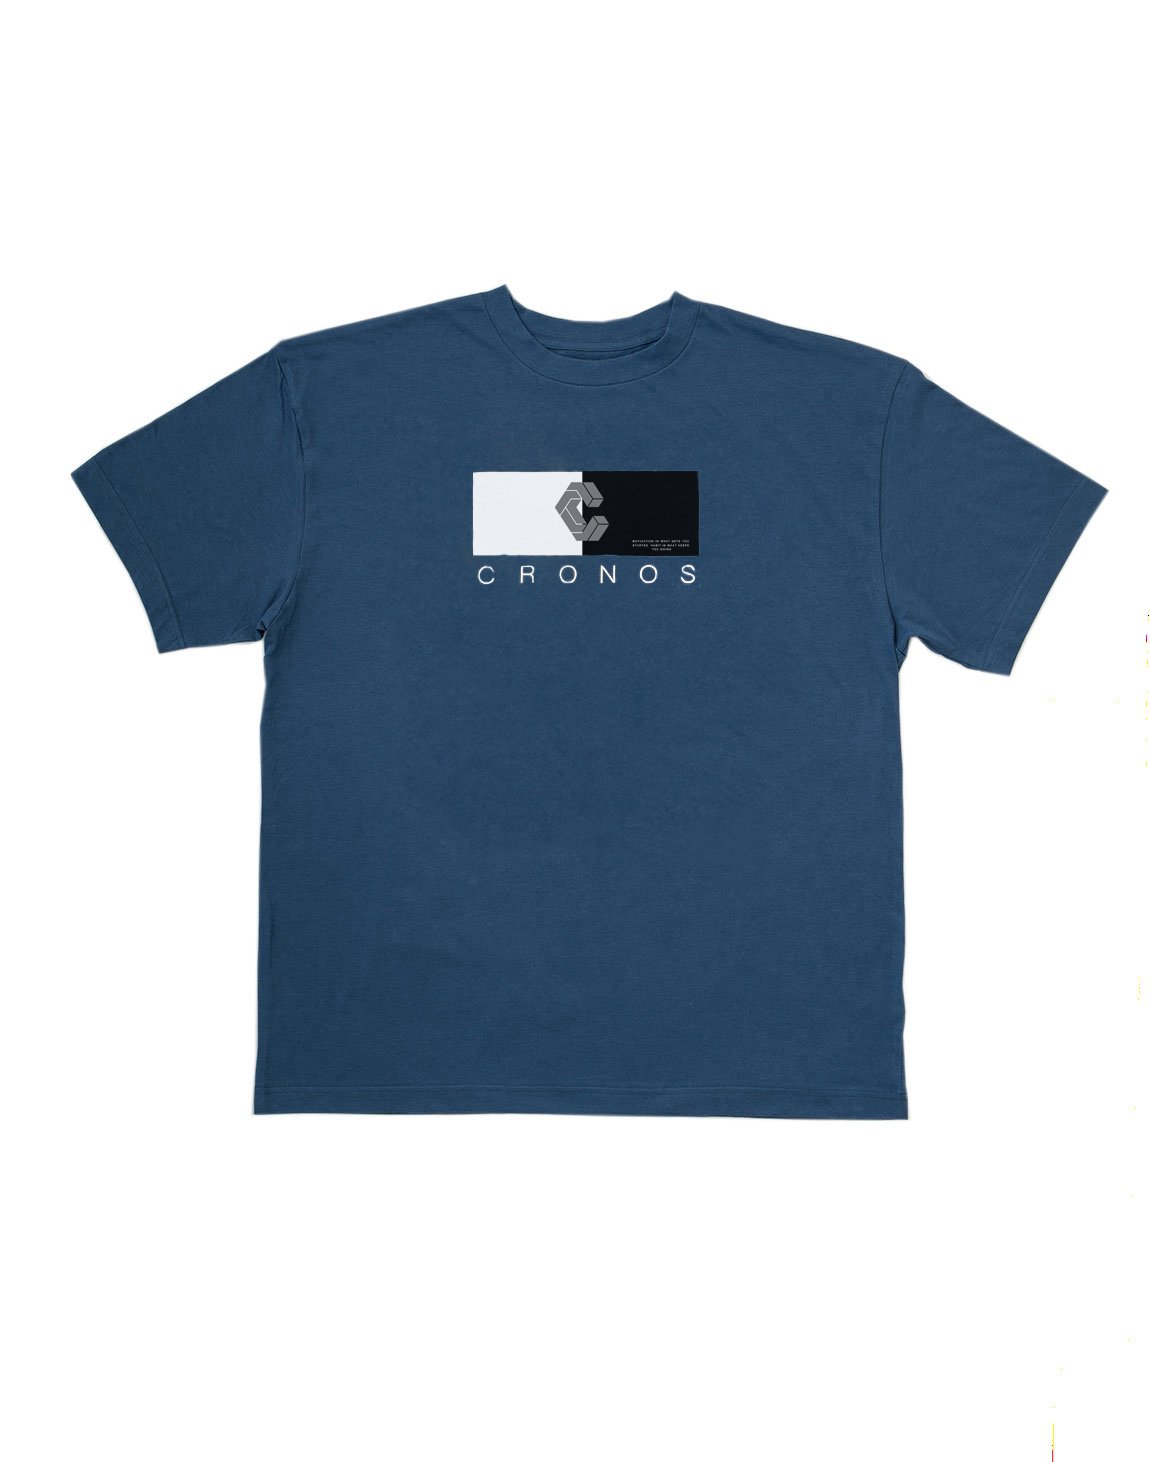 <img class='new_mark_img1' src='https://img.shop-pro.jp/img/new/icons1.gif' style='border:none;display:inline;margin:0px;padding:0px;width:auto;' />CRONOS HALF COLOR T-SHIRT【BULE】